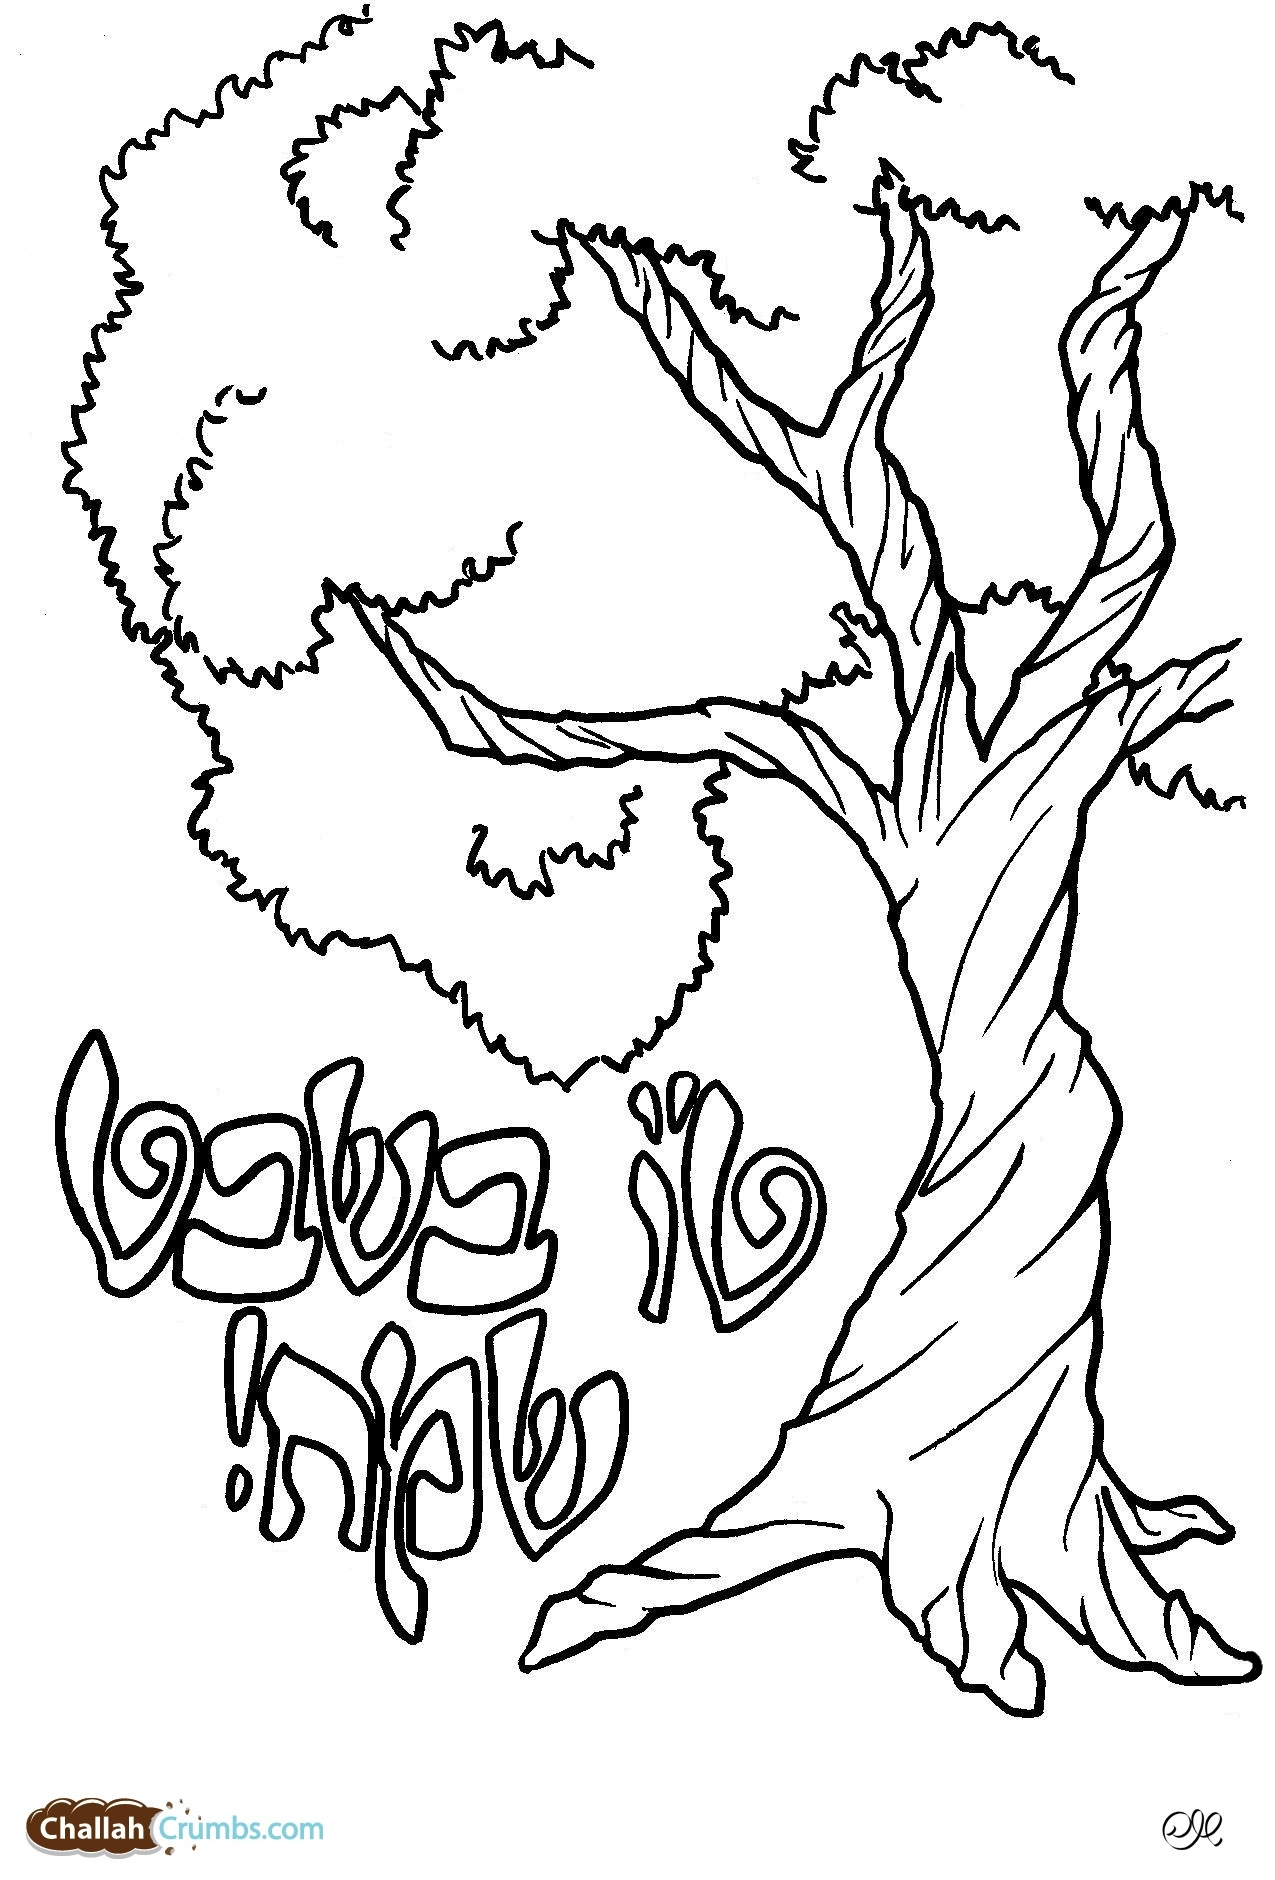 lulav and etrog picture awesome lulav and etrog coloring pages coloring pages etrog picture lulav and